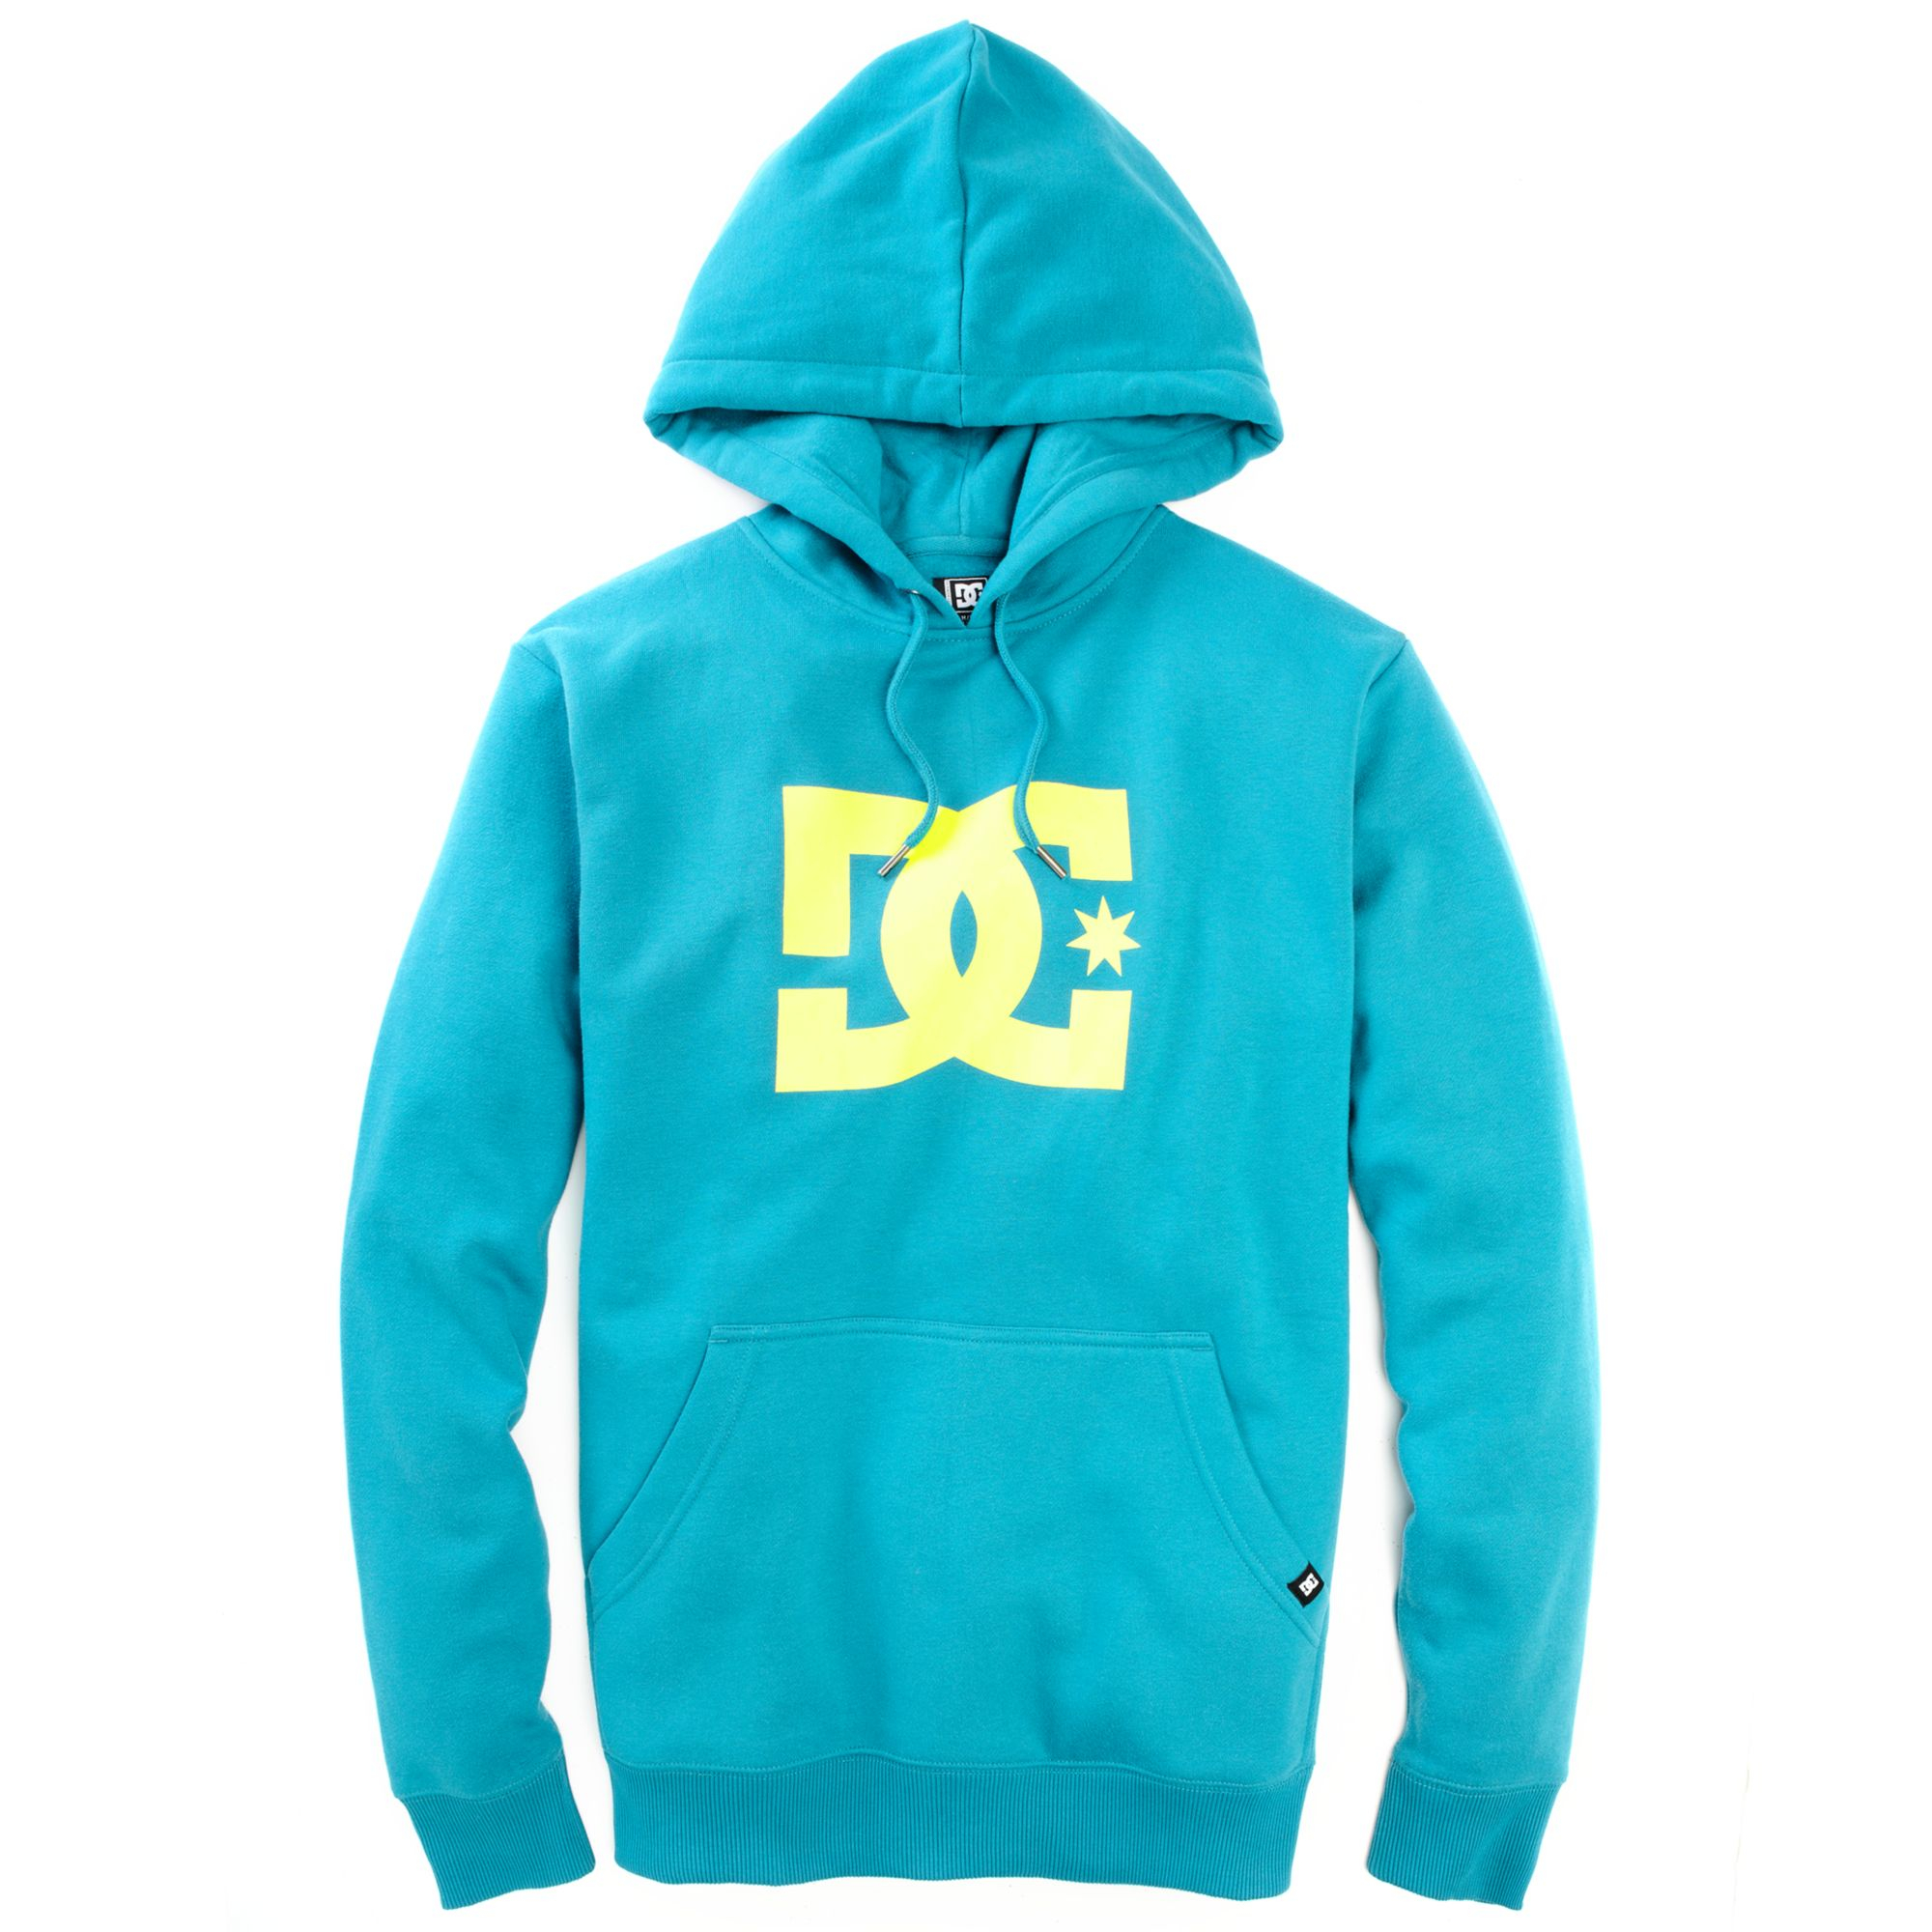 ed50a3d2 Lyst - DC Shoes Star Pullover Hoodie in Blue for Men